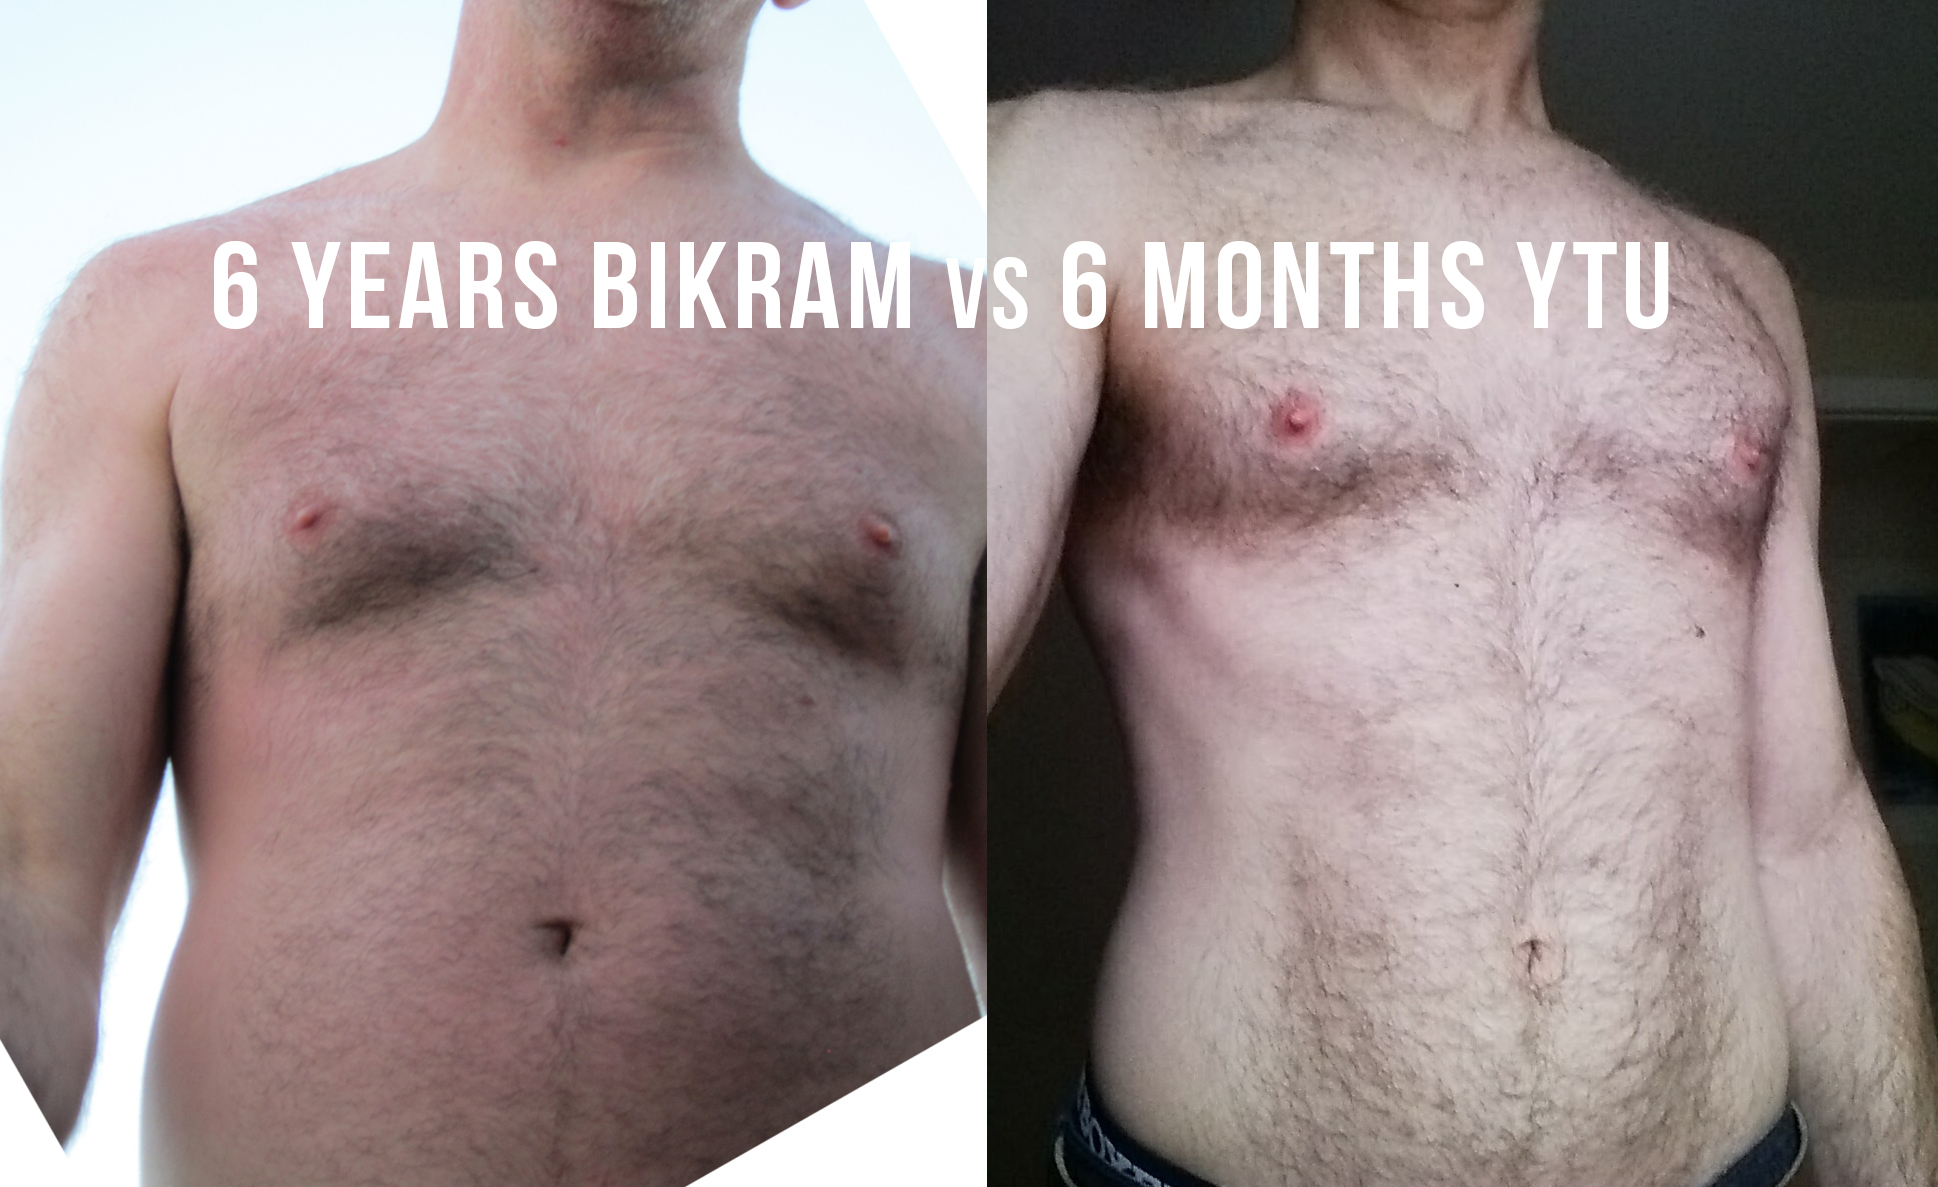 I don't have a lot of pictures of my gross hairy chest, but my son happened to snap the one on the left while we were on vacation before starting Yoga Tune Up®, so I took another today. It's not the greatest before/after, but still. . .turns out I have ribs.